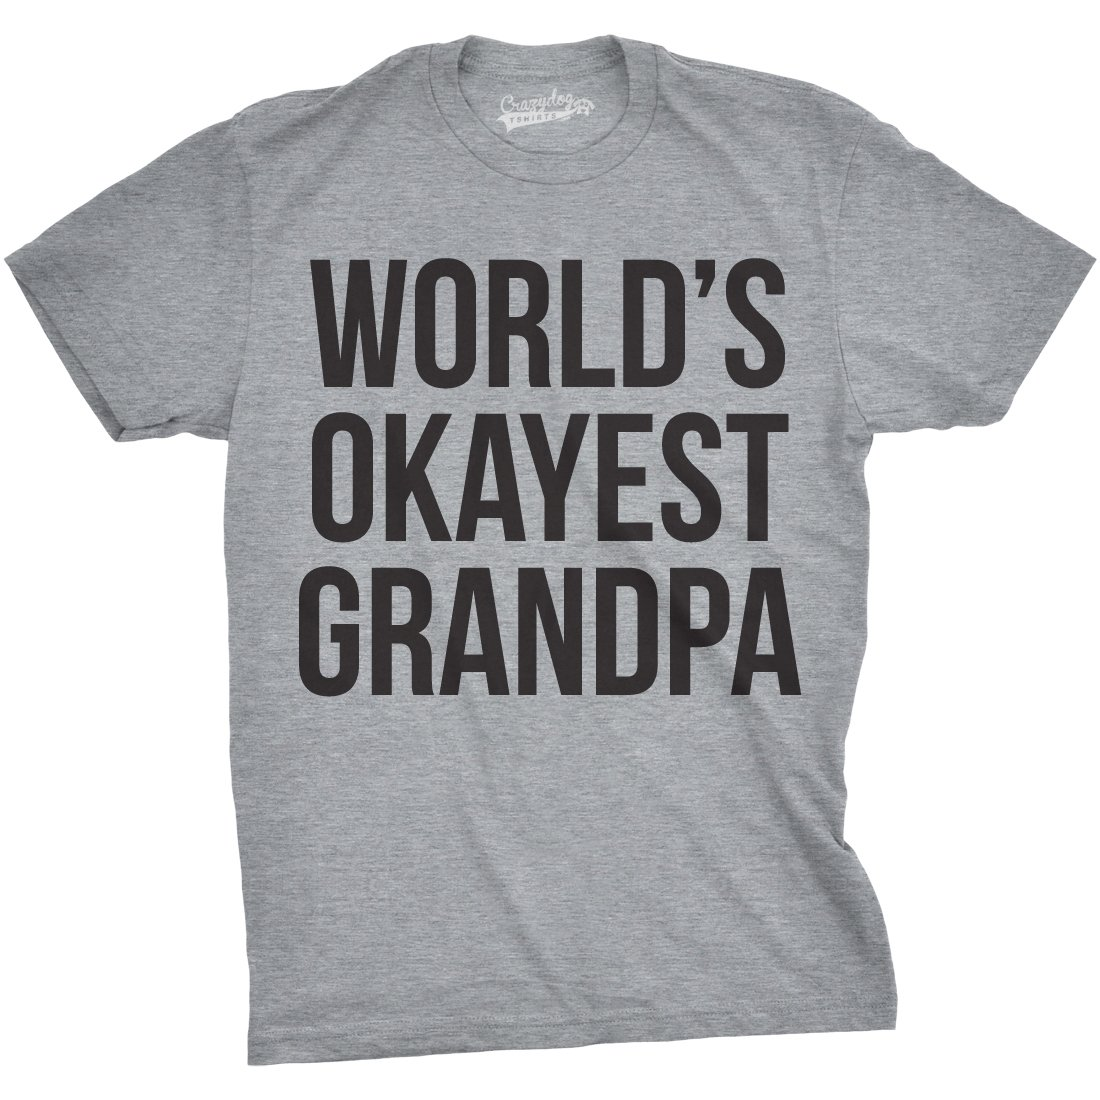 Mens Worlds Okayest Grandpa T Shirt Cool Grandparent Family Relationship Tee